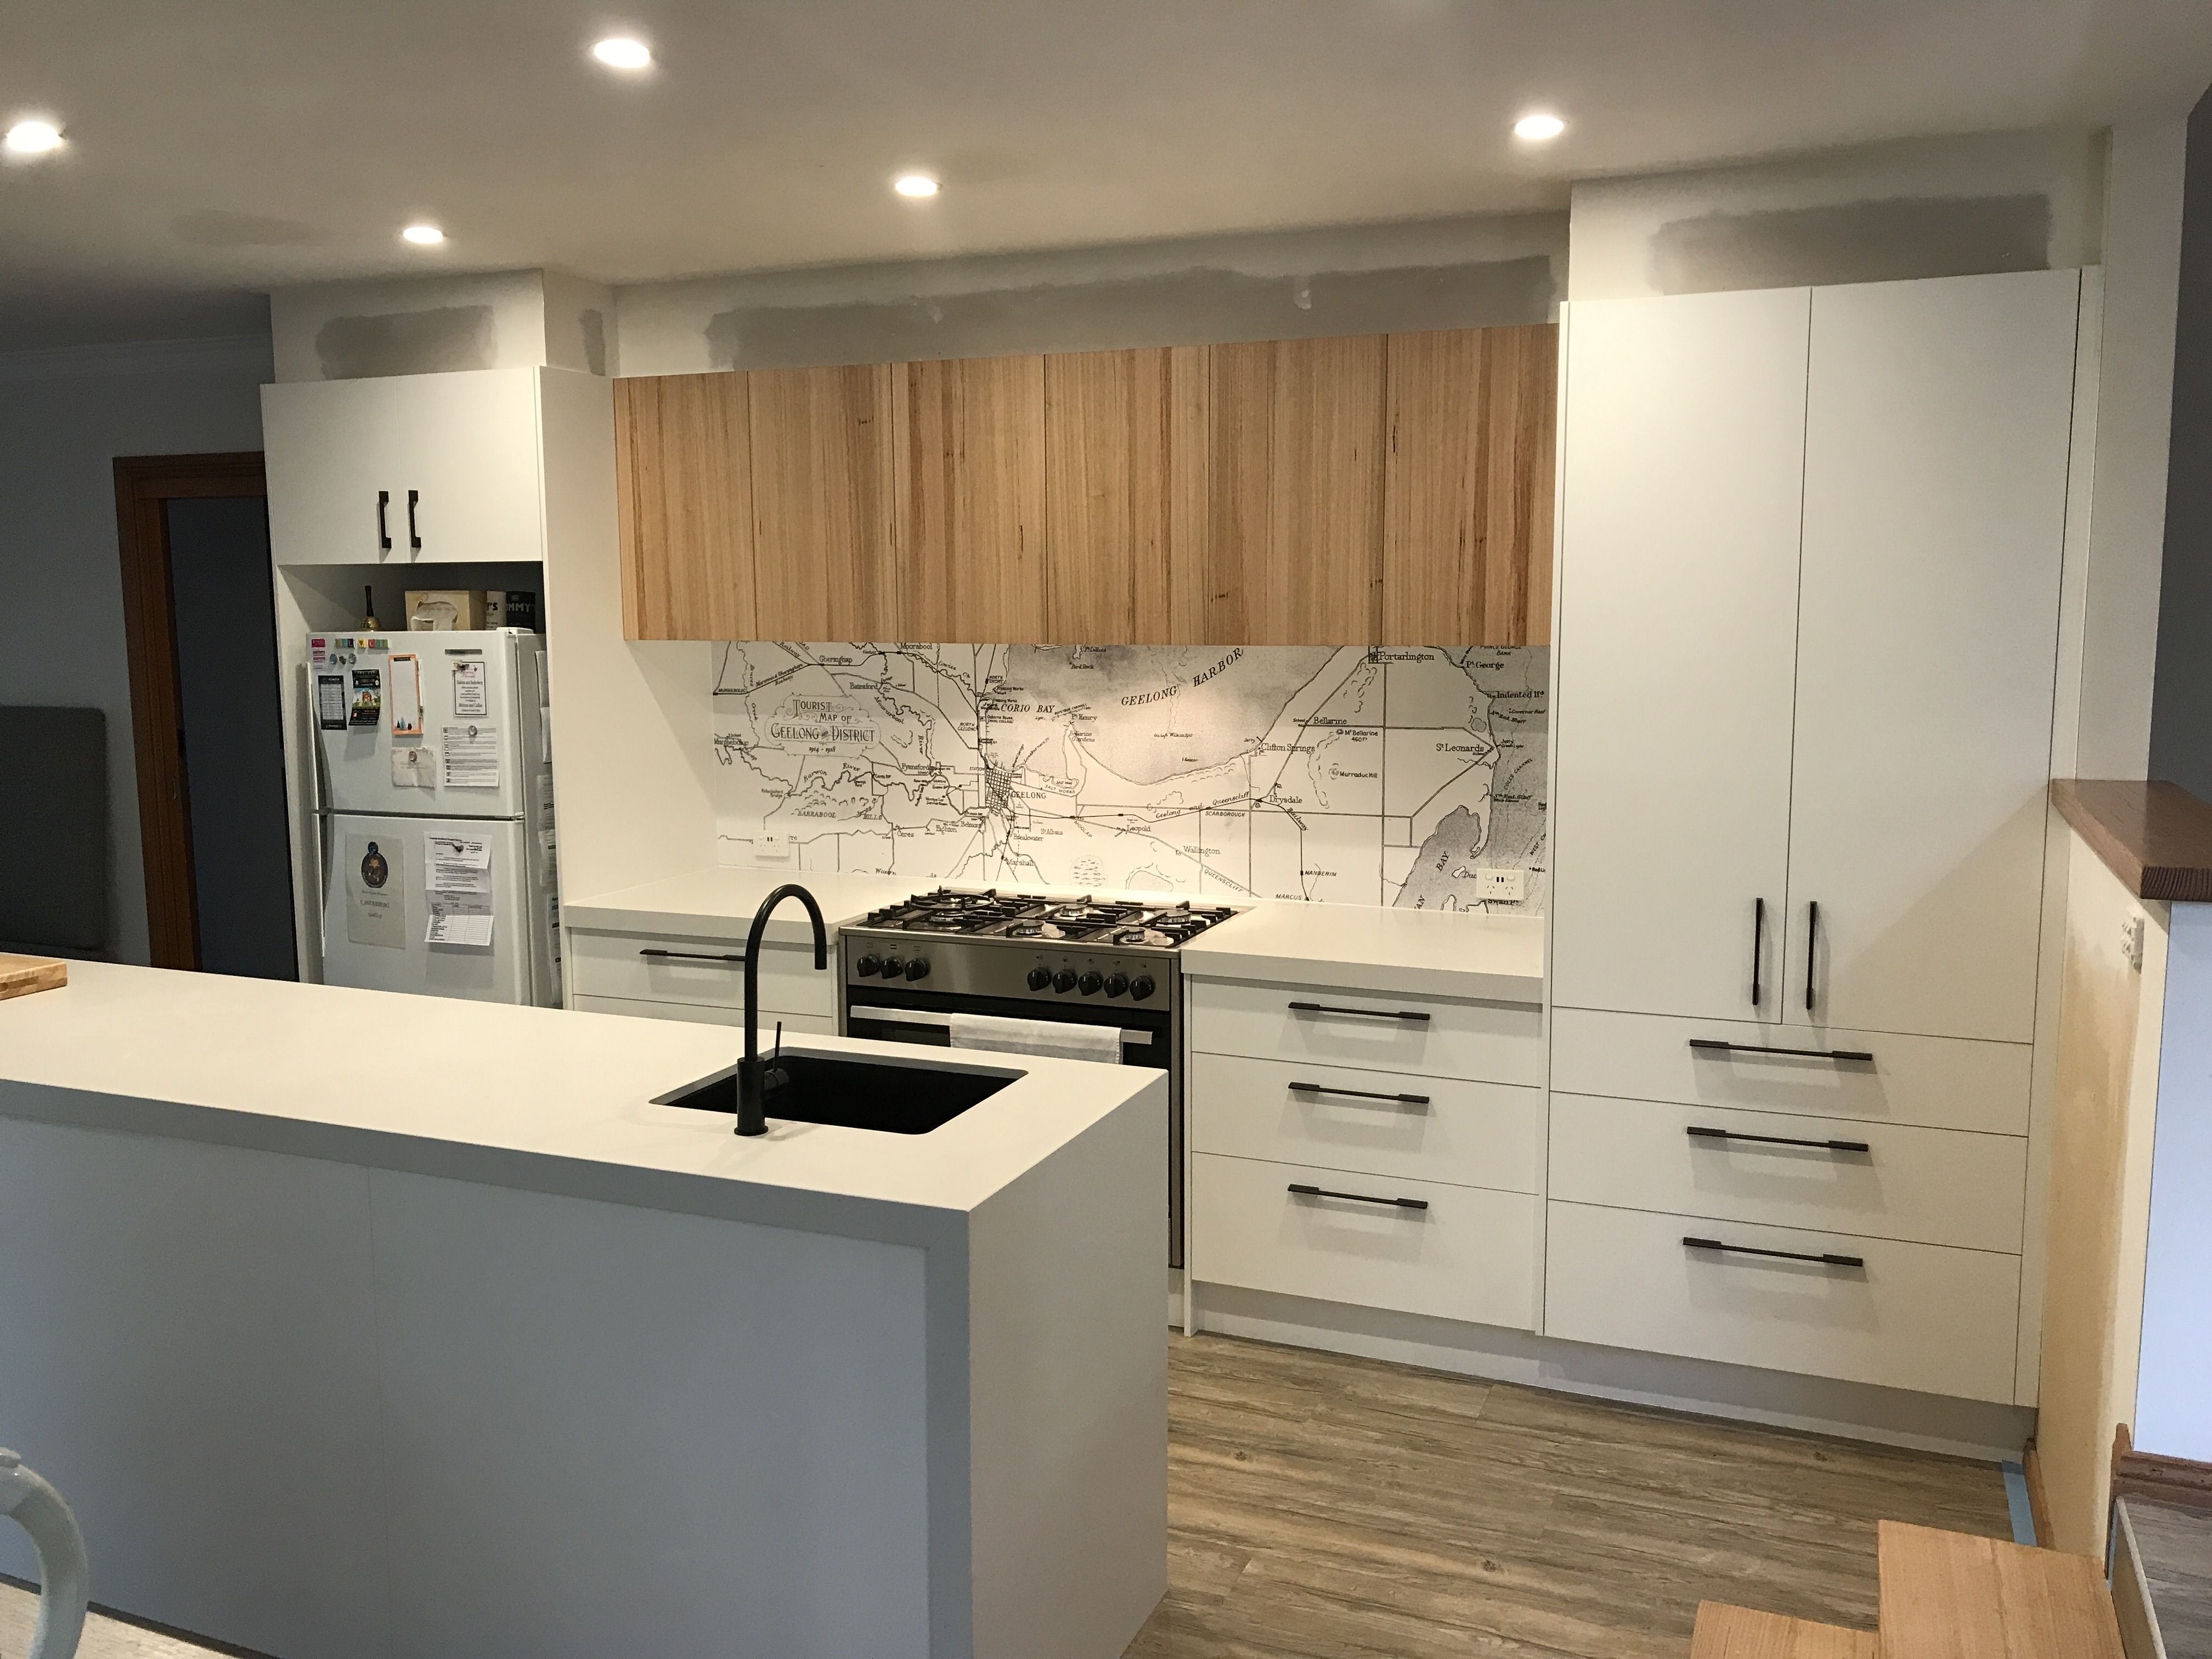 How Adorable The Customised Splashback From Lincoln Sentry